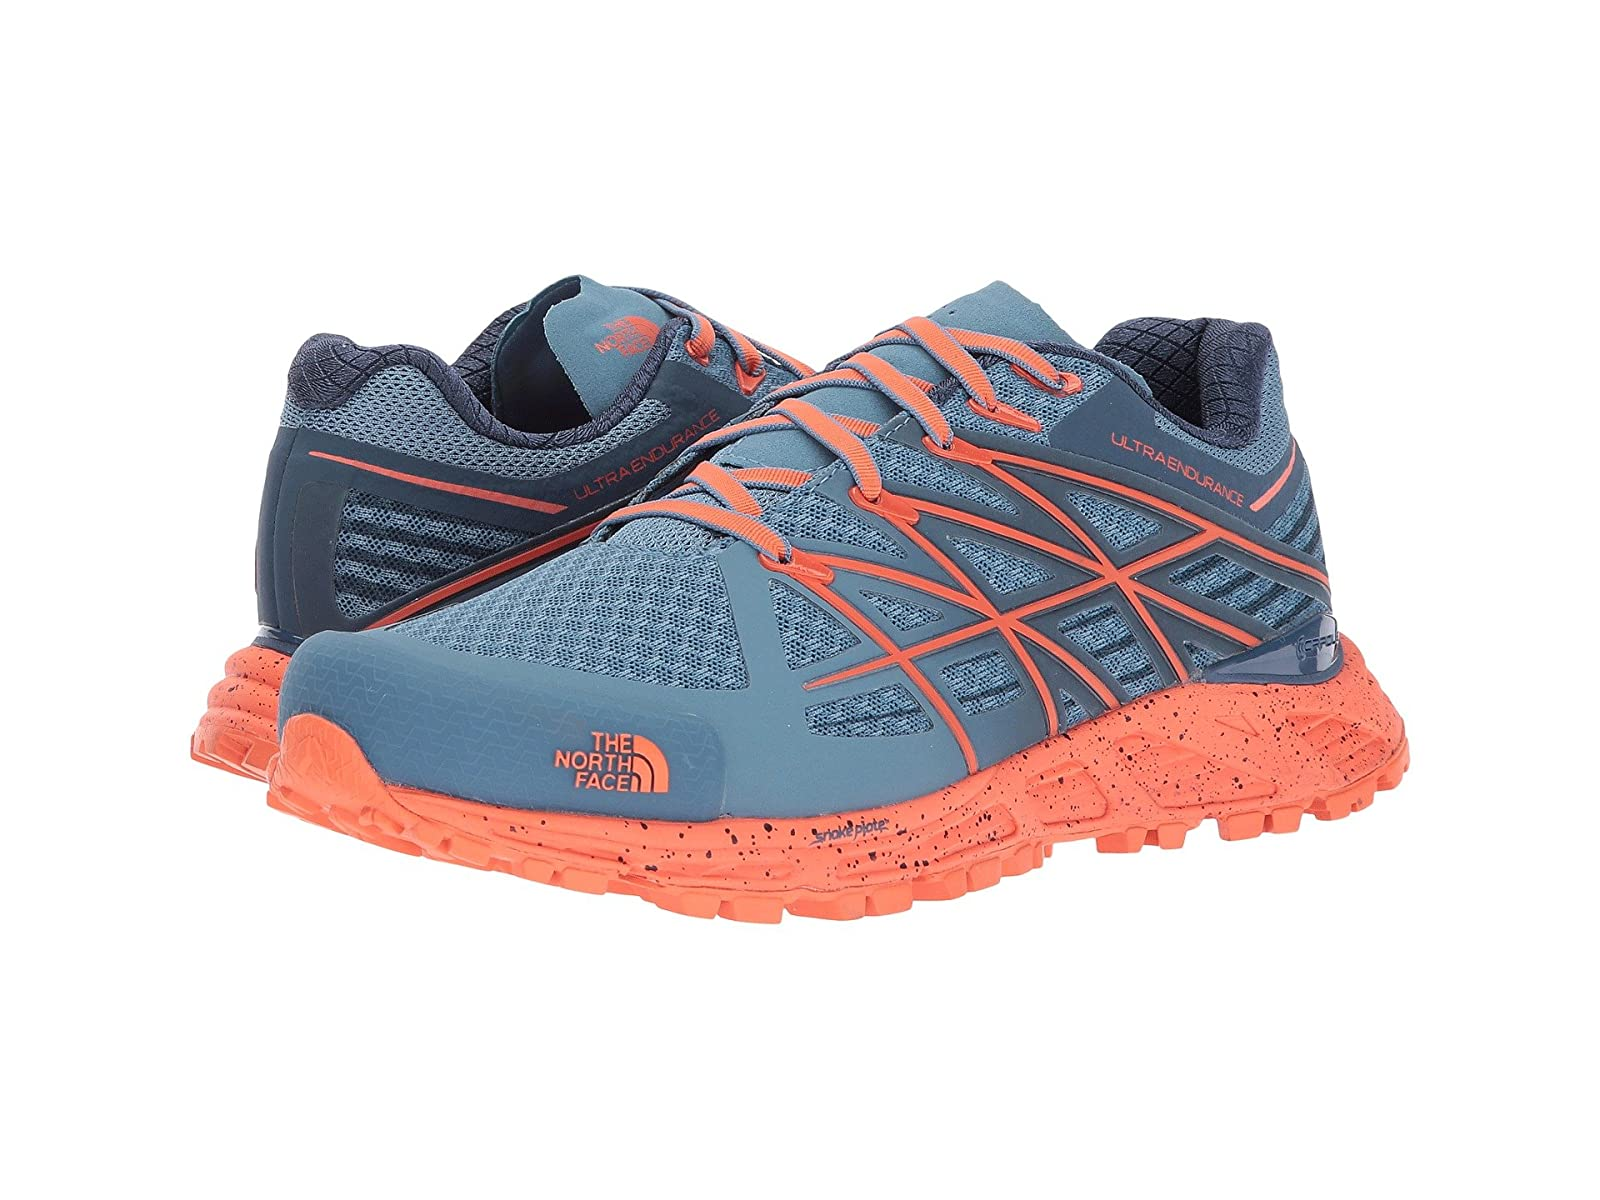 The North Face Ultra EnduranceCheap and distinctive eye-catching shoes